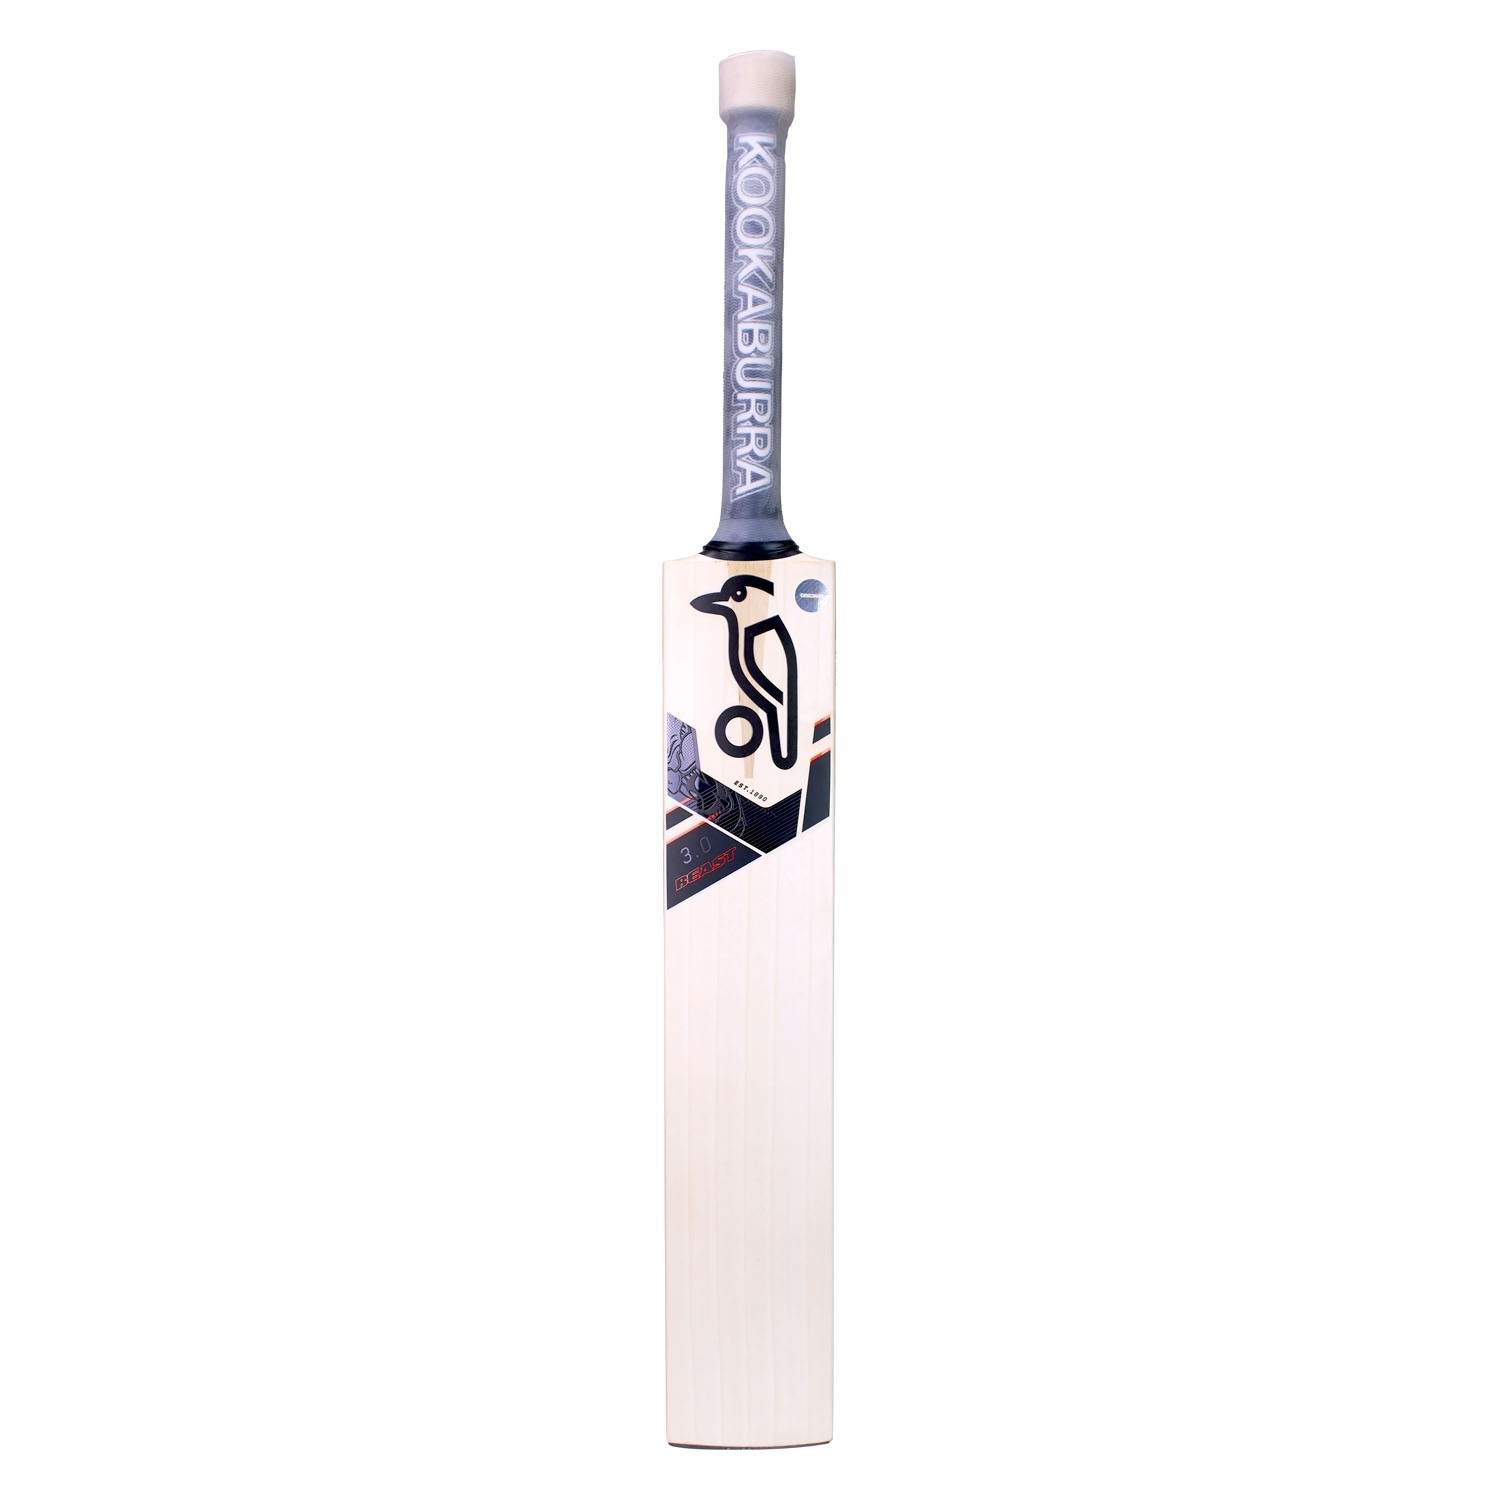 2021 Kookaburra Beast 3.0 Cricket Bat